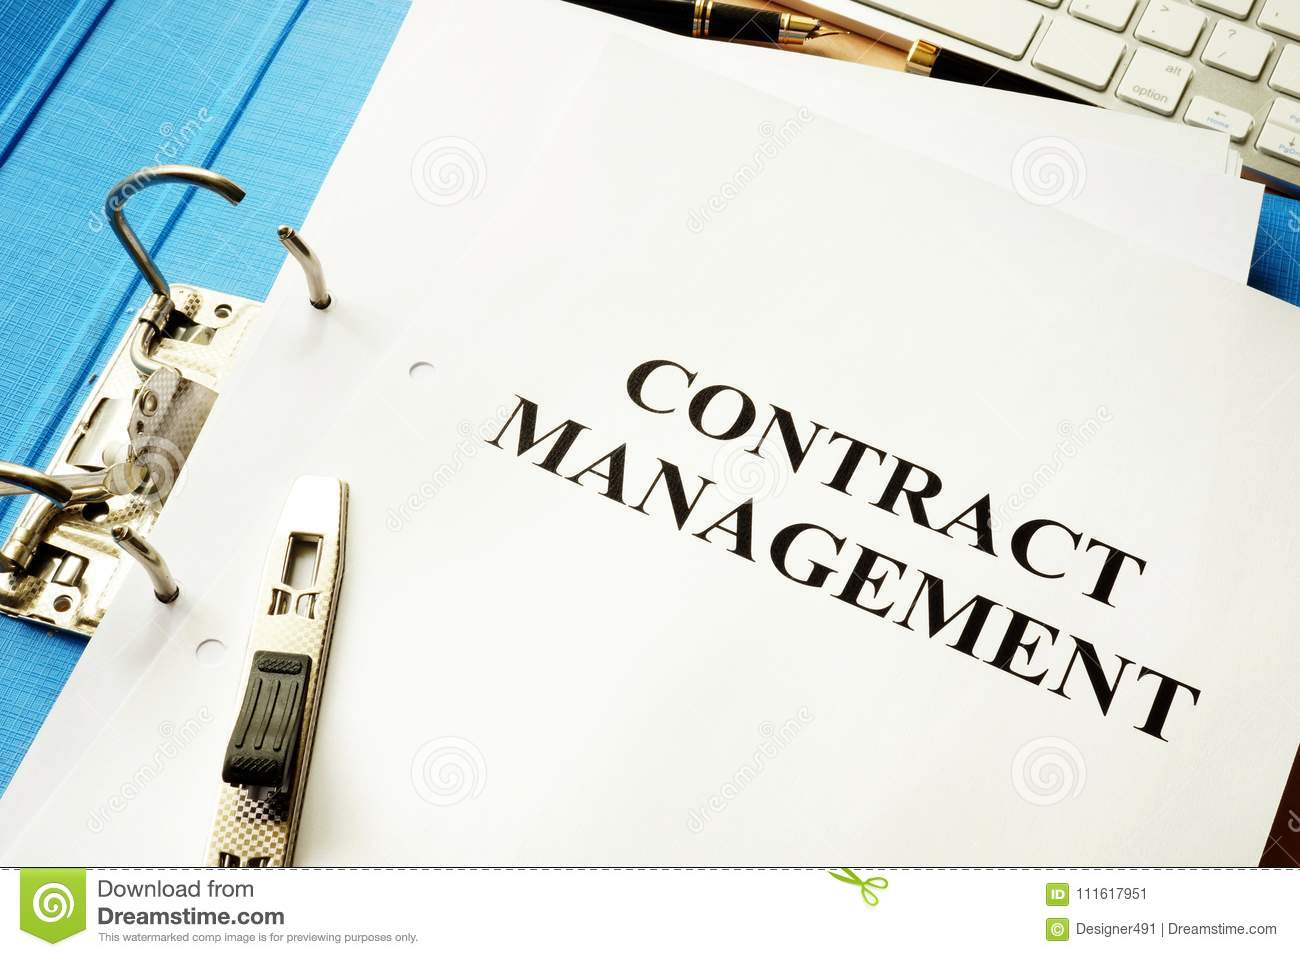 Folder and documents with contract management.